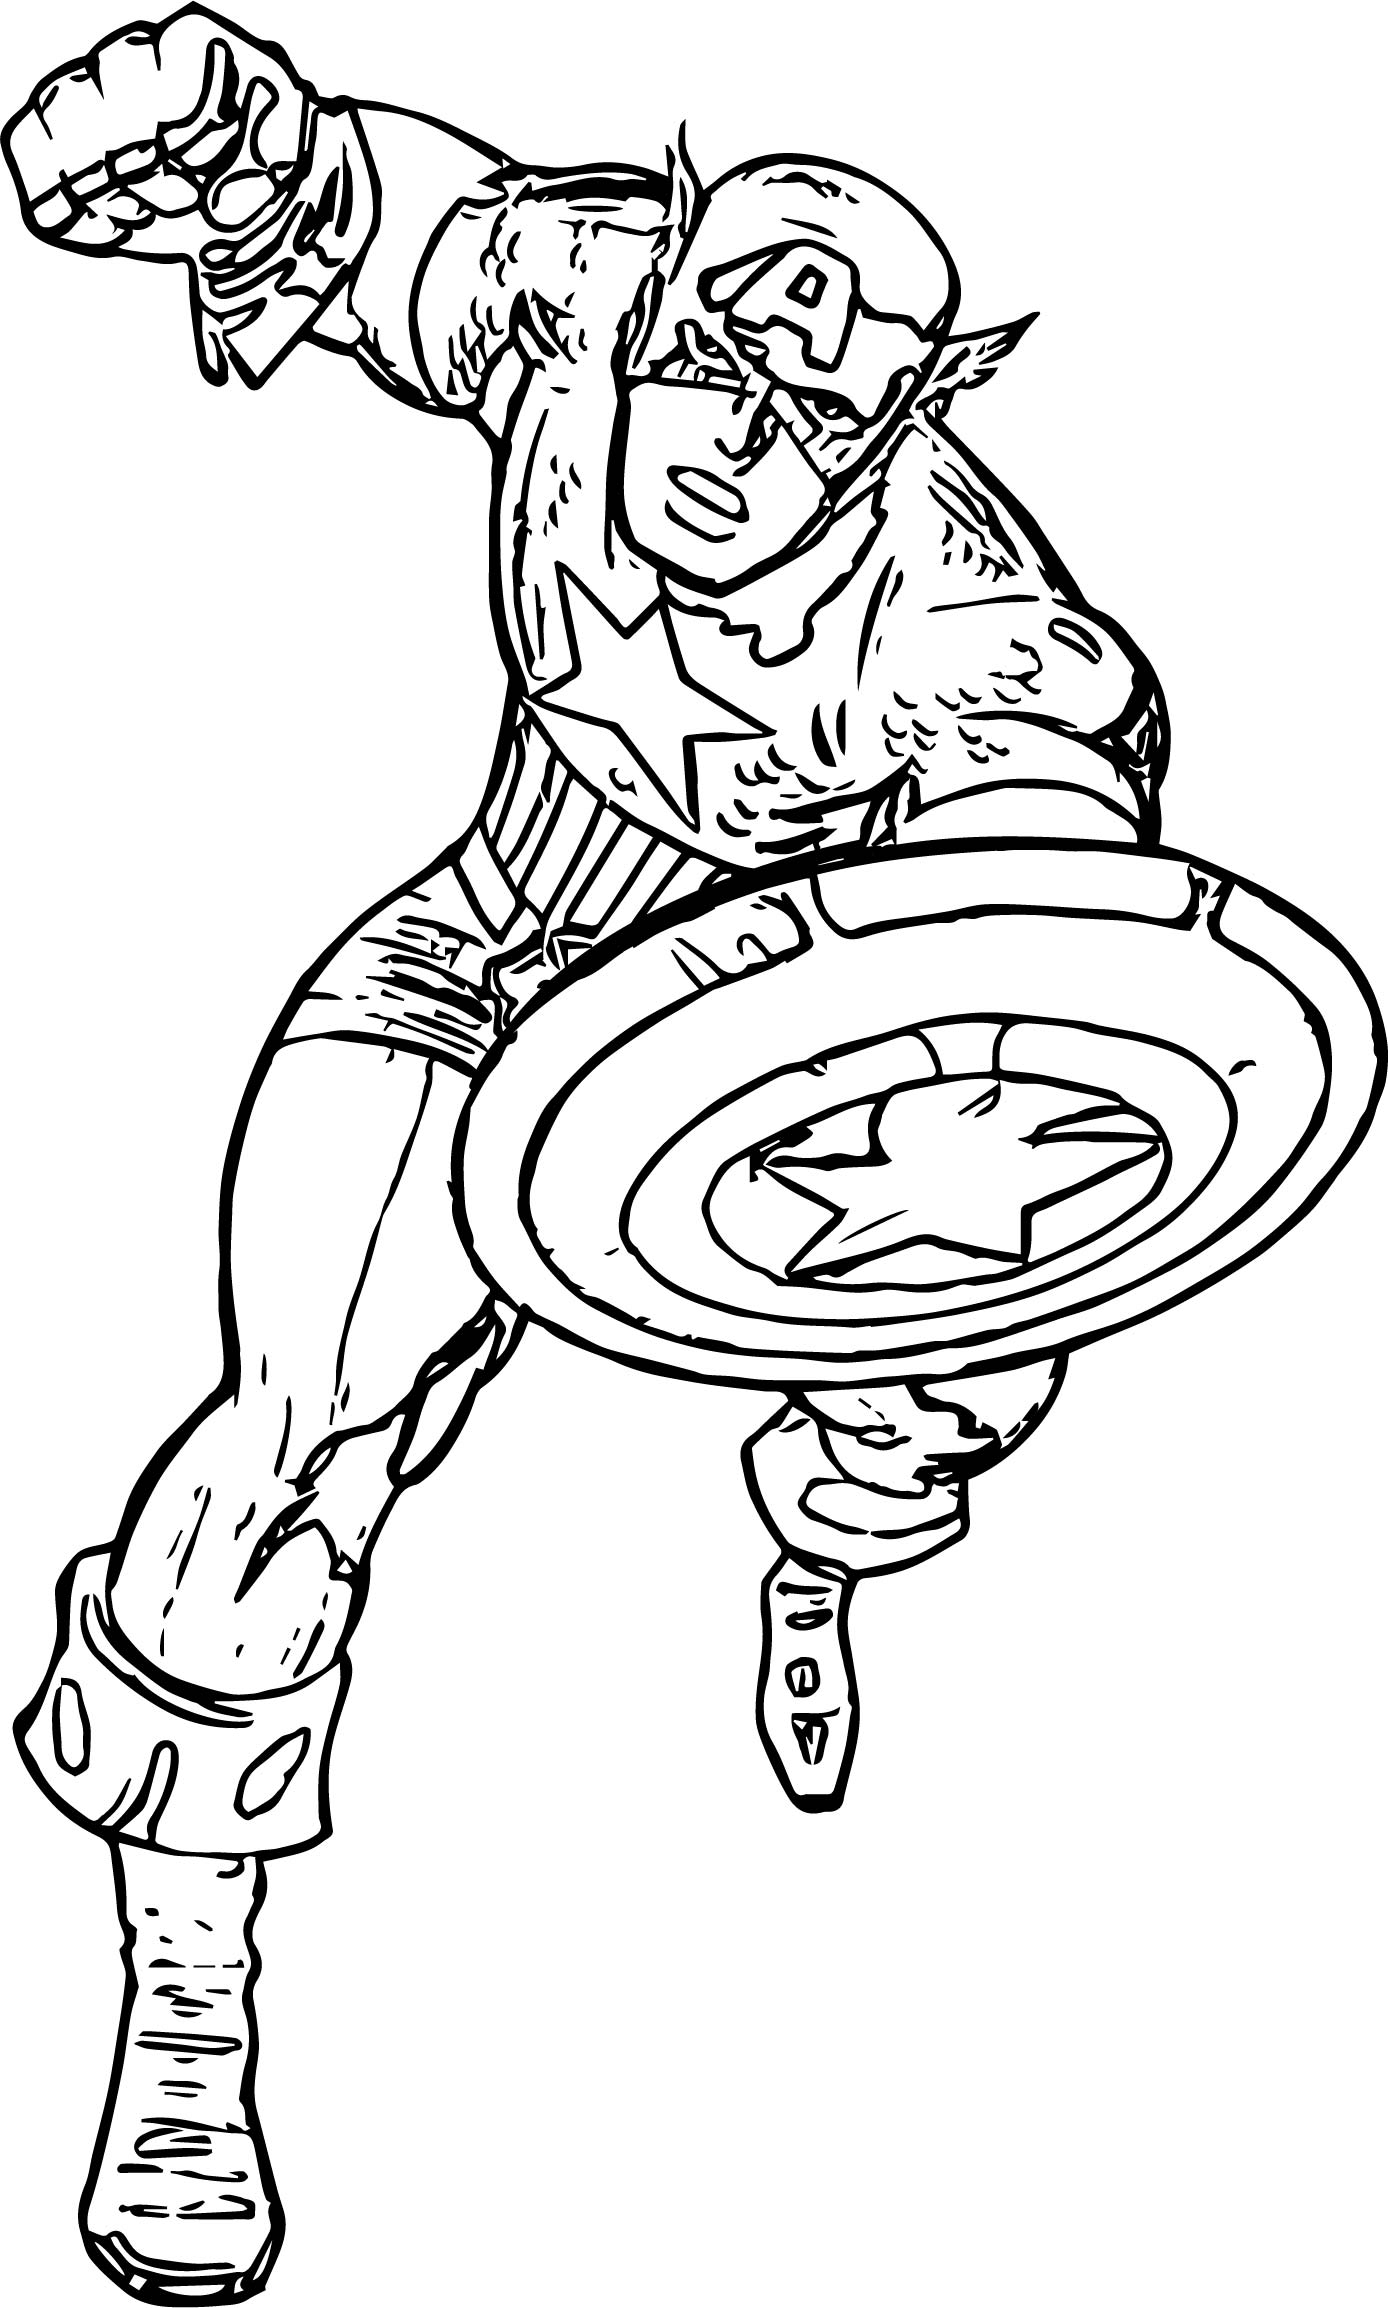 Captain Punch Coloring Page